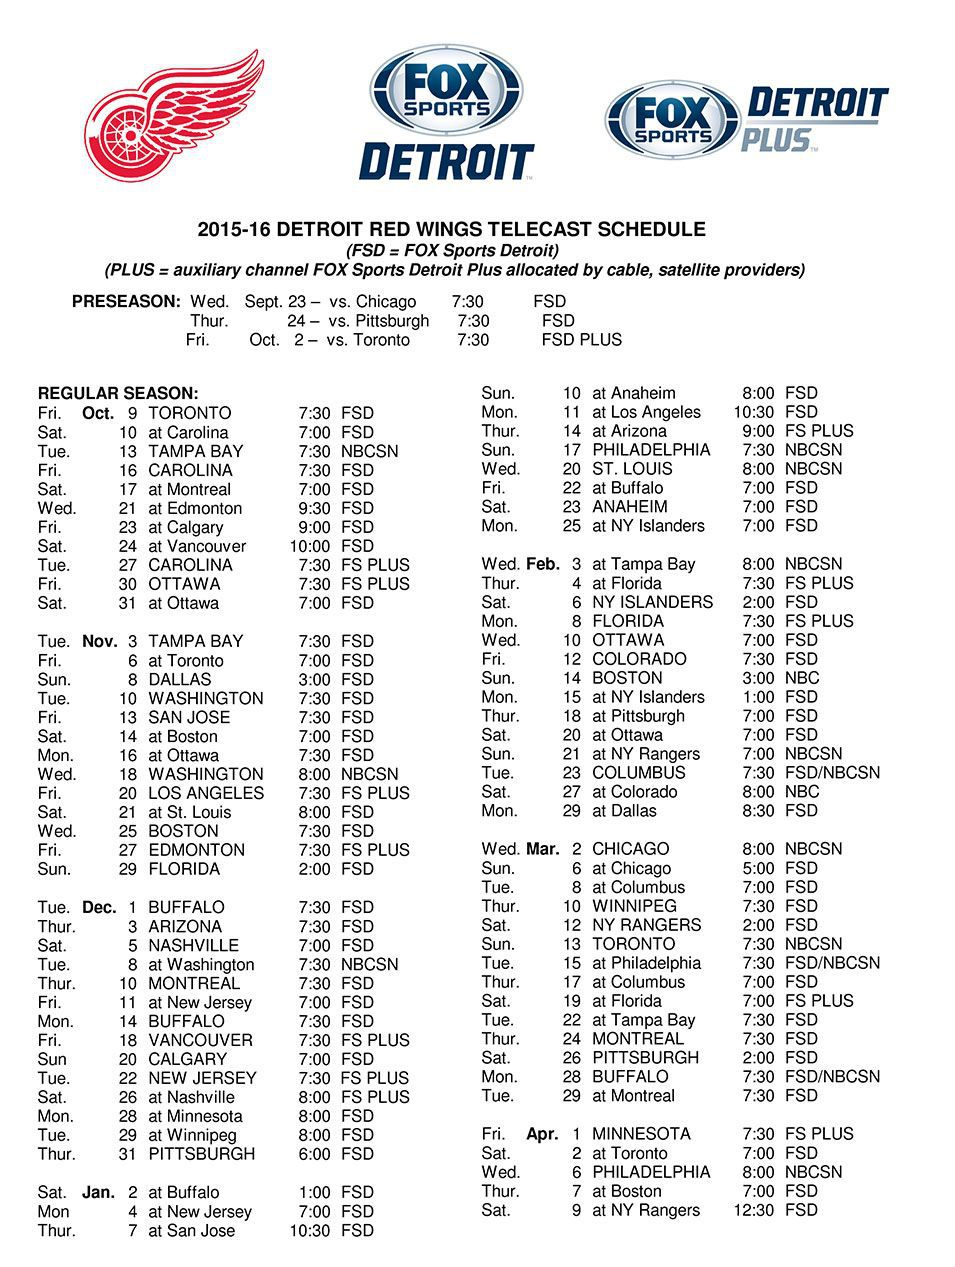 Red Wings Announce 2015-16 TV Schedule - Winging It In Motown